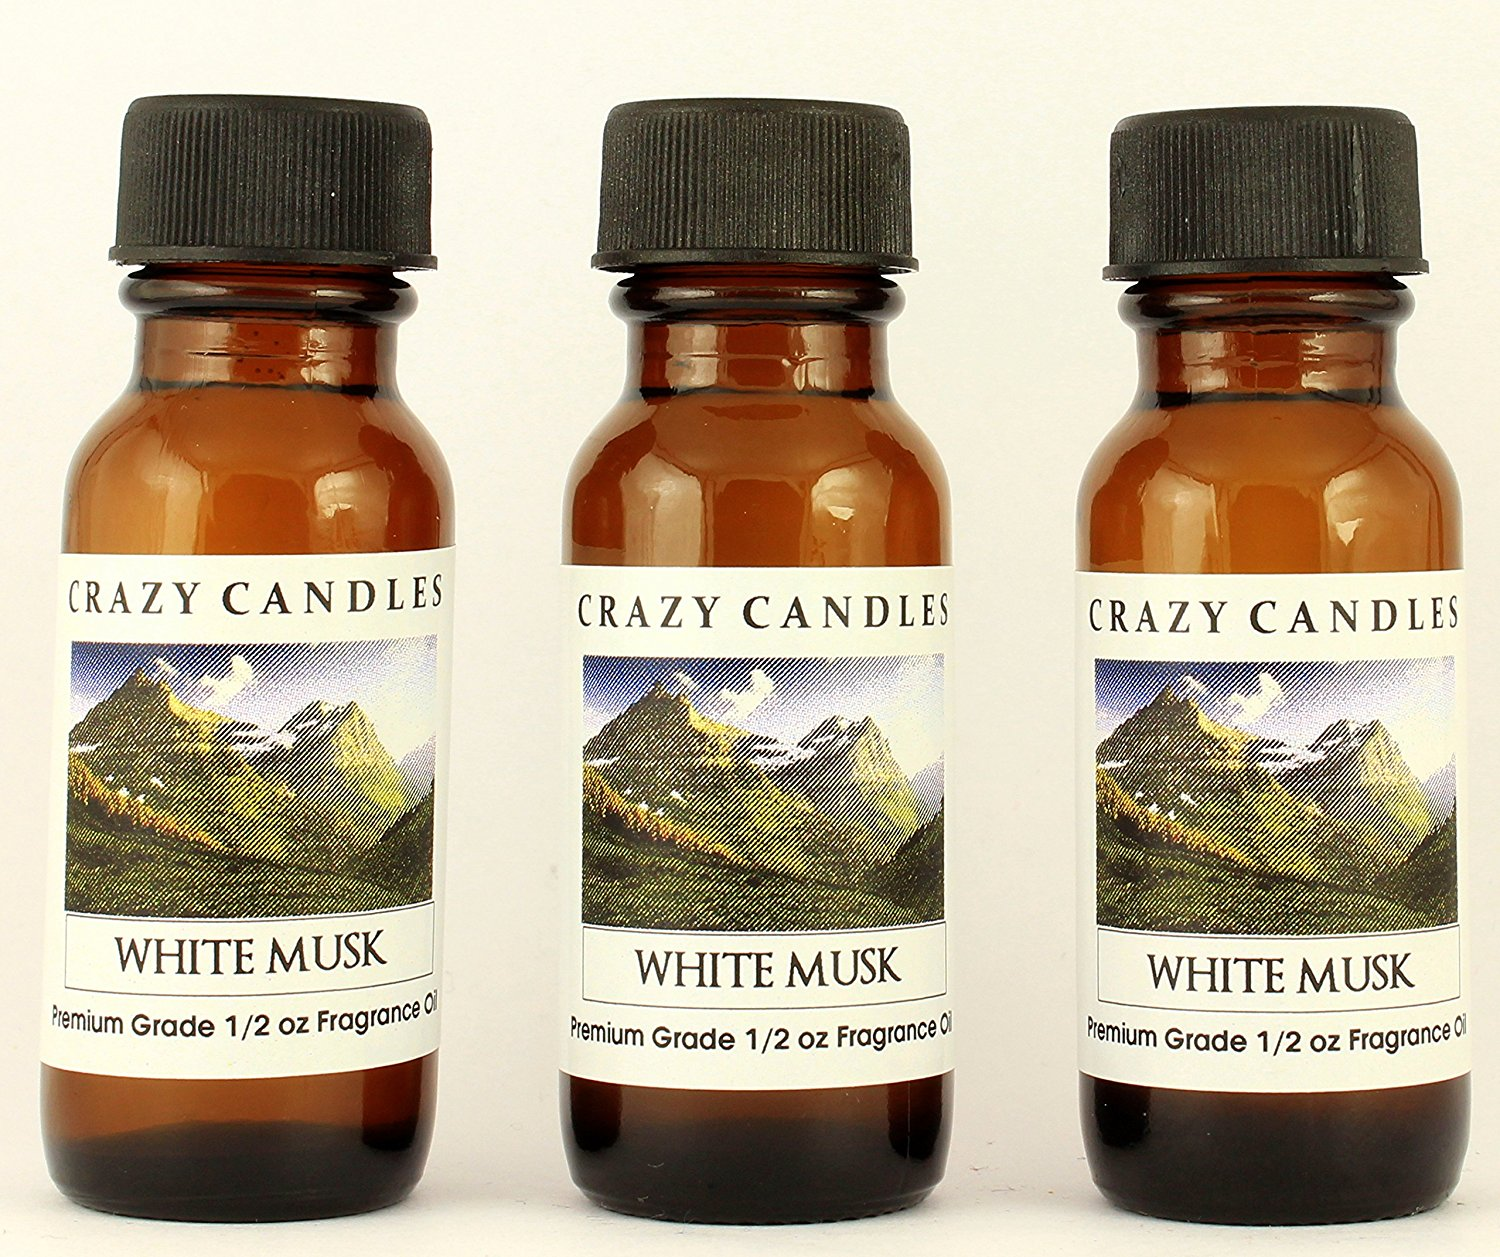 White Musk 3 Bottles 1/2 Fl Oz Each (15ml) Premium Grade Scented Fragrance Oil By Crazy Candles (Blend of Musk, Jasmine, Rose and Lily)